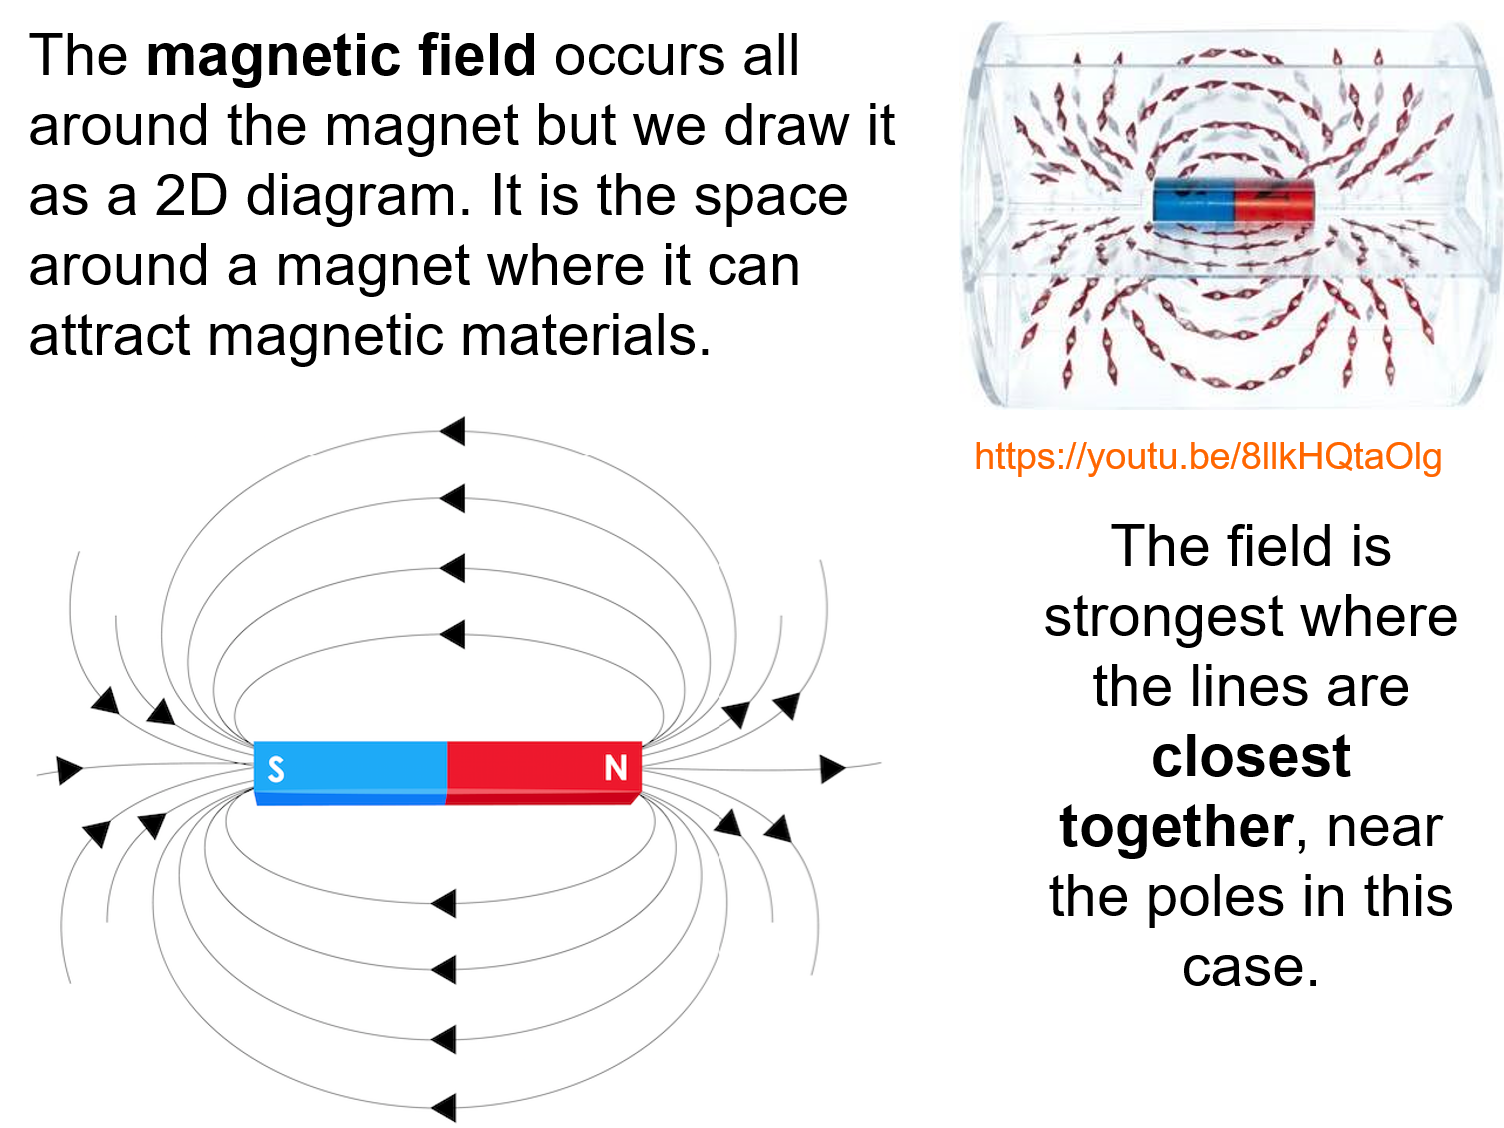 GCSE EDEXCEL 9-1 Physics Topic: Magnetism and the Motor Effect (CP10/SP12)